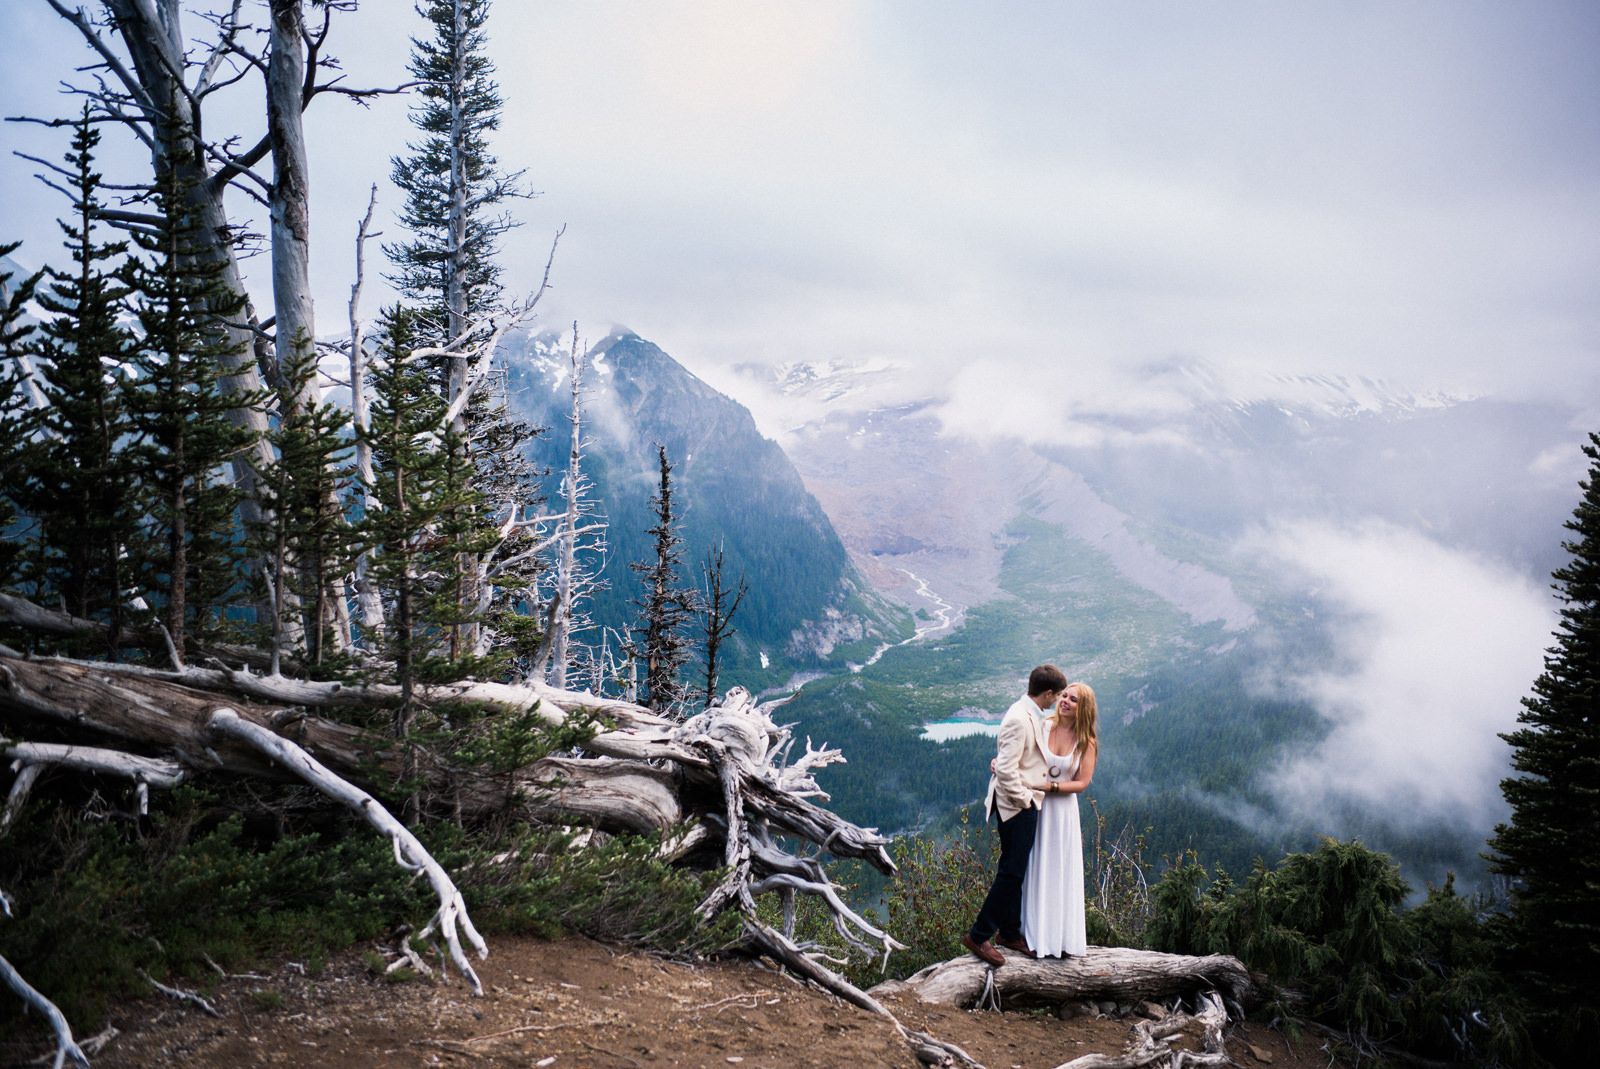 230-foggy-mountain-elopement-by-best-pnw-wedding-photographer-ryan-flynn.jpg